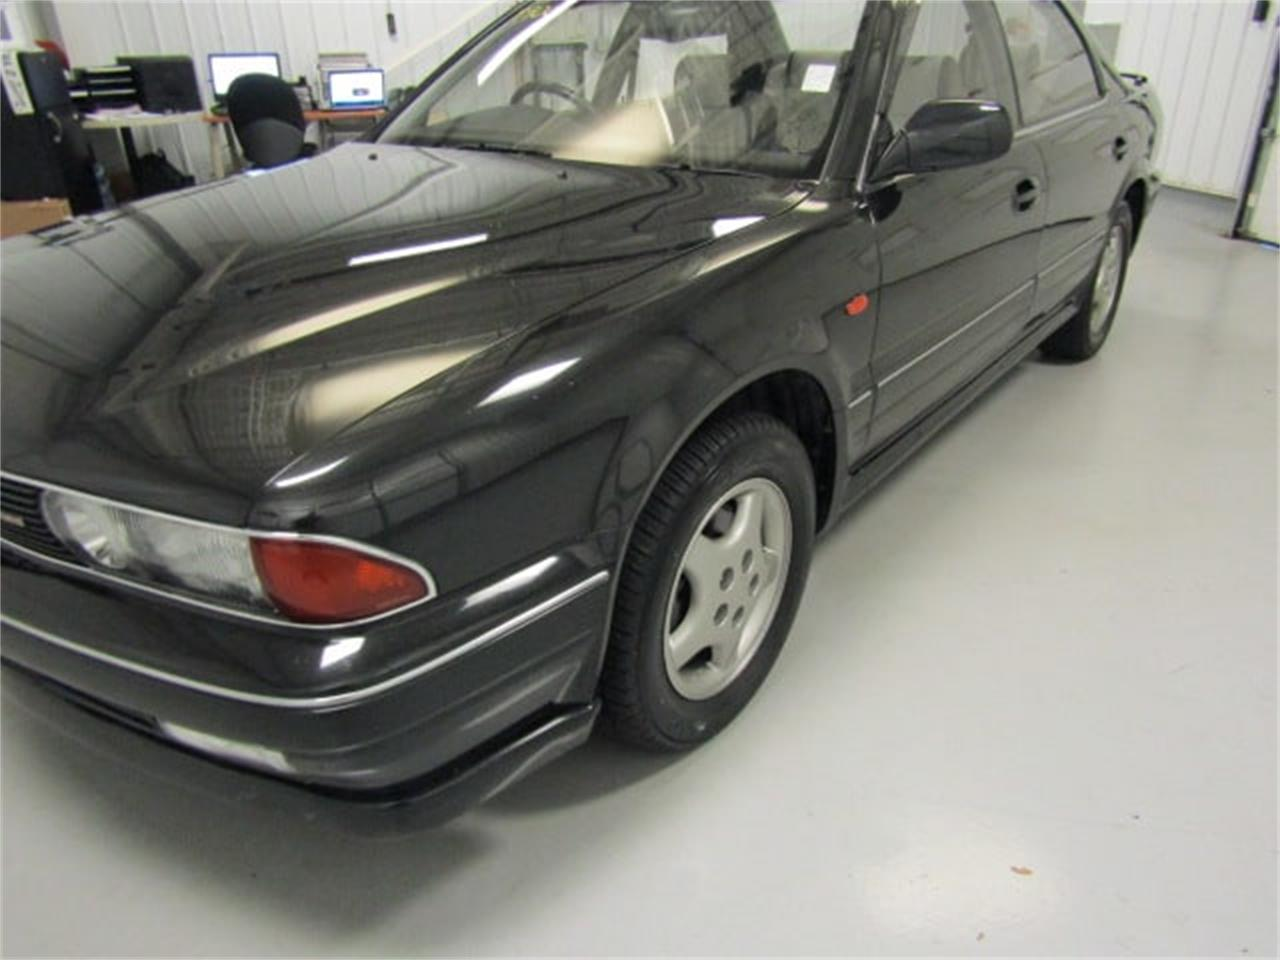 Large Picture of 1991 Mitsubishi Diamante located in Christiansburg Virginia - $7,900.00 Offered by Duncan Imports & Classic Cars - LN4P